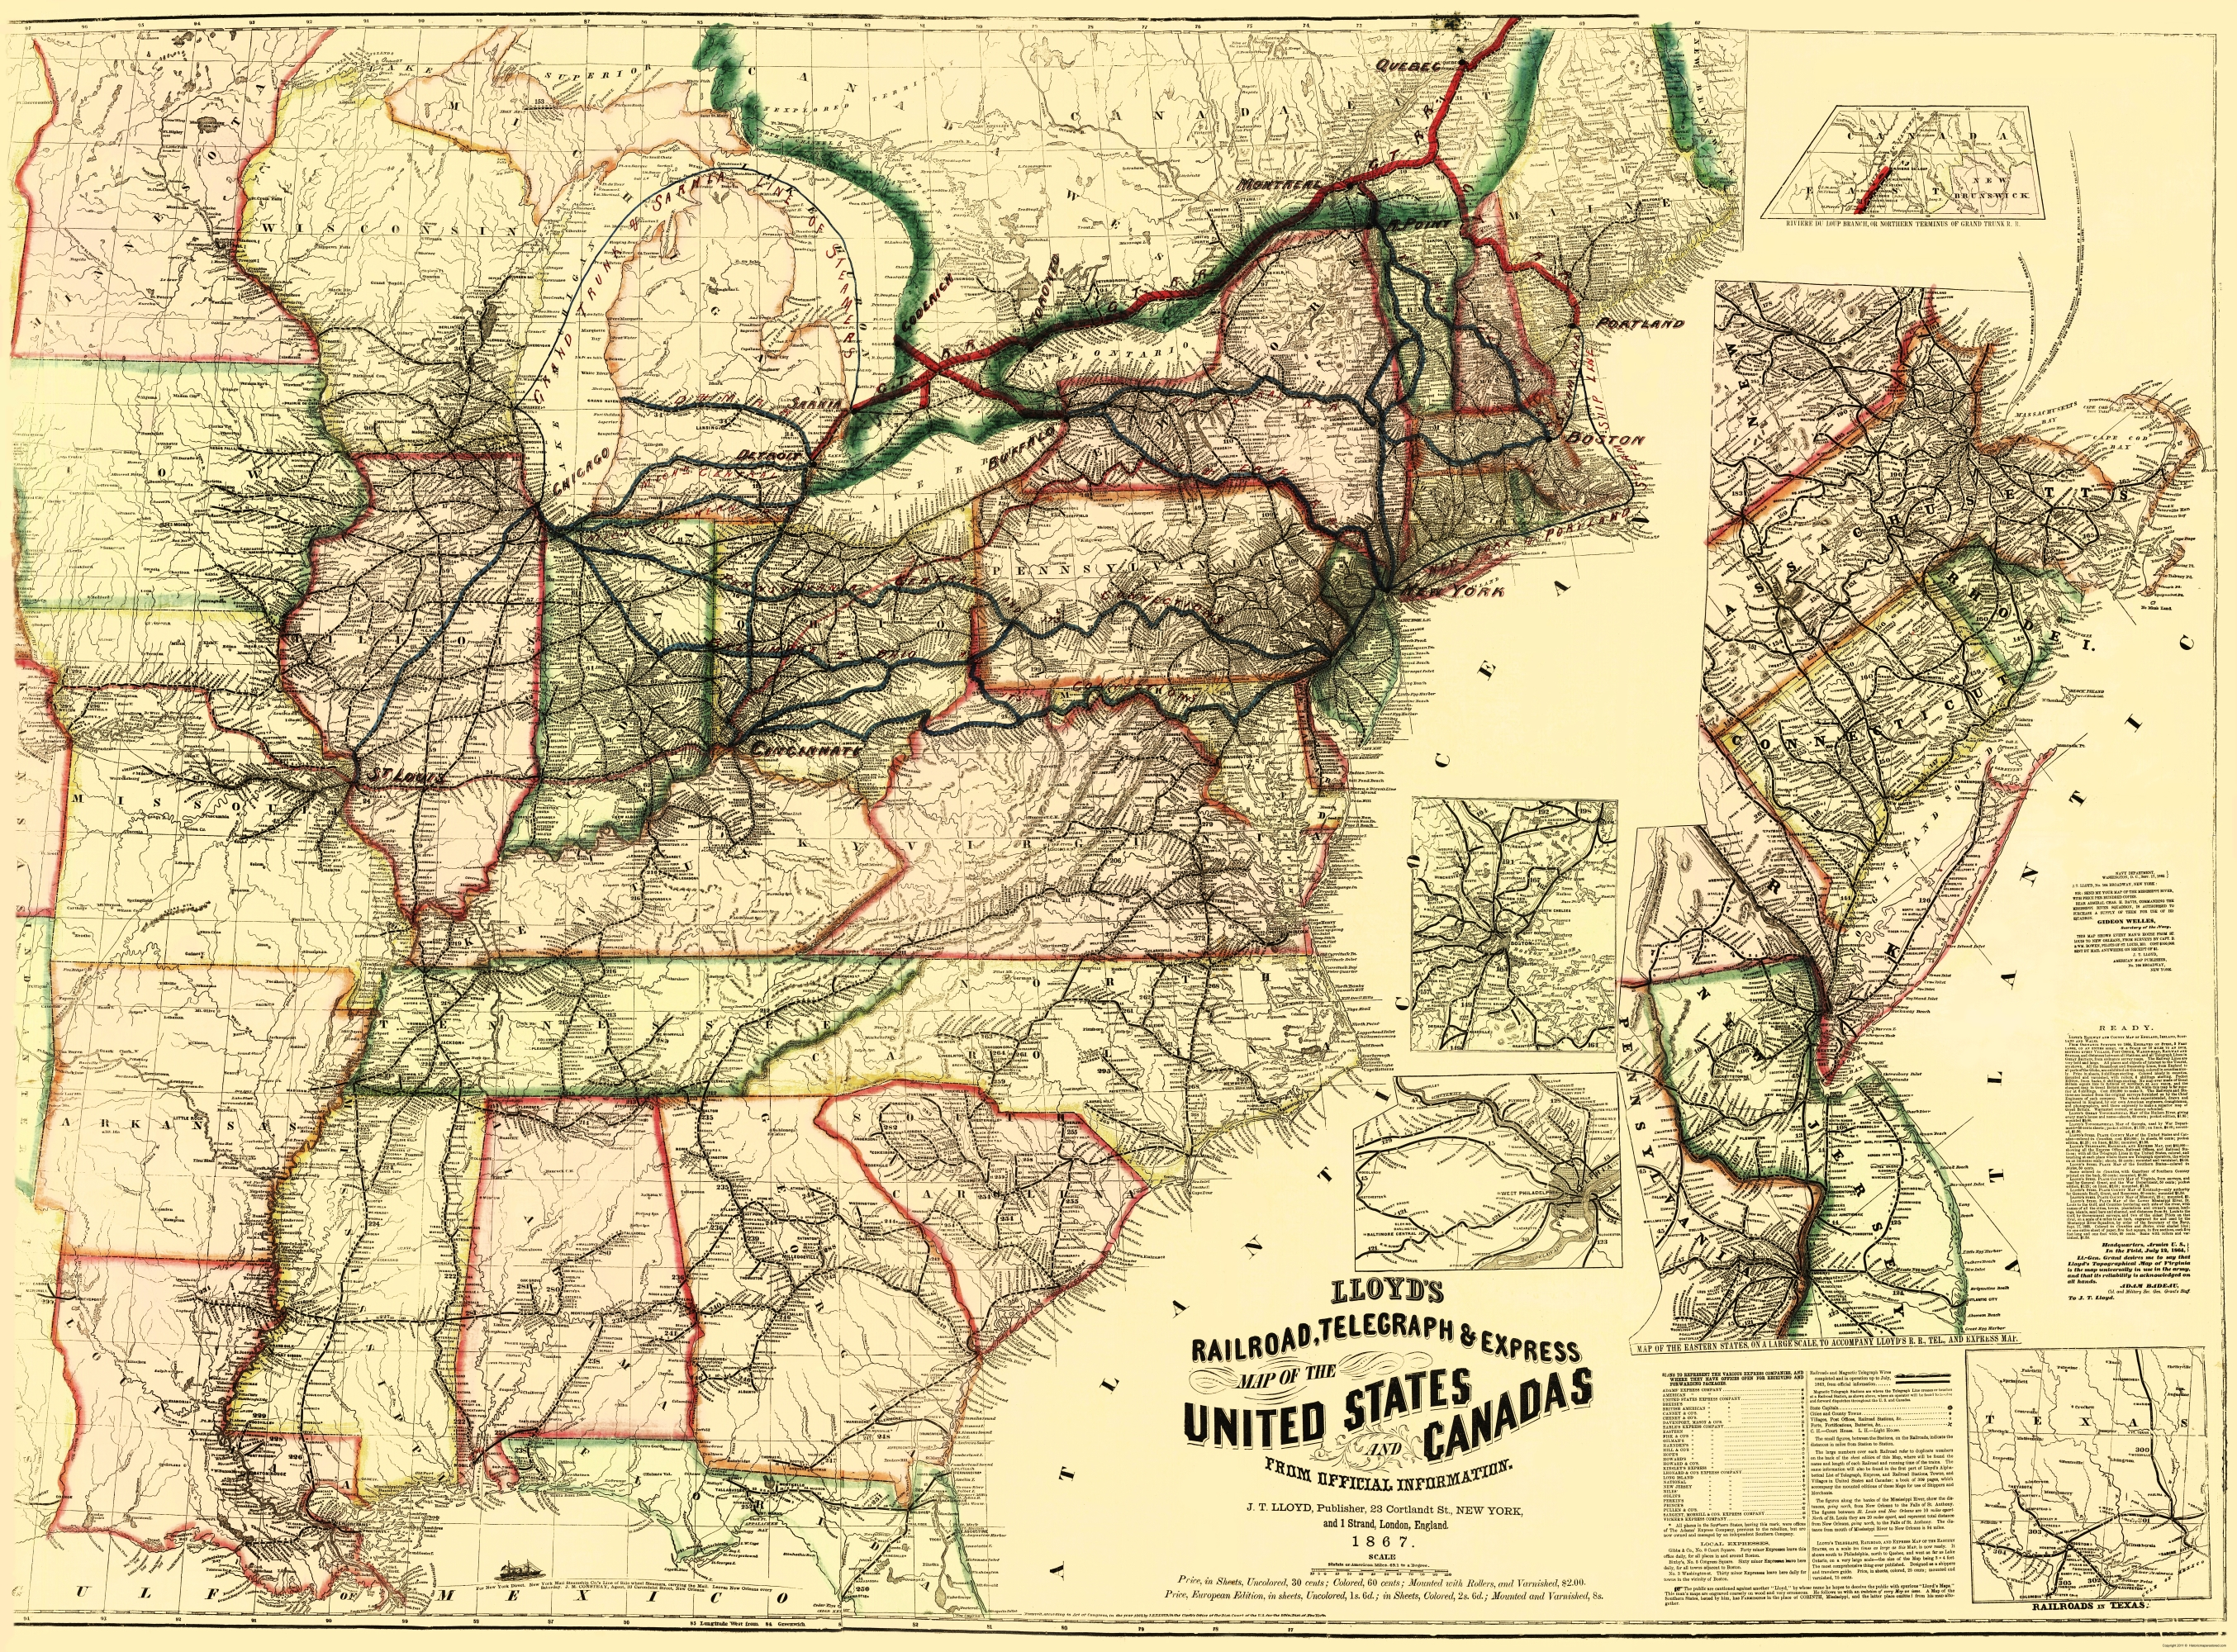 Old Map Railroads Telegraph Express In US - 1867 us map